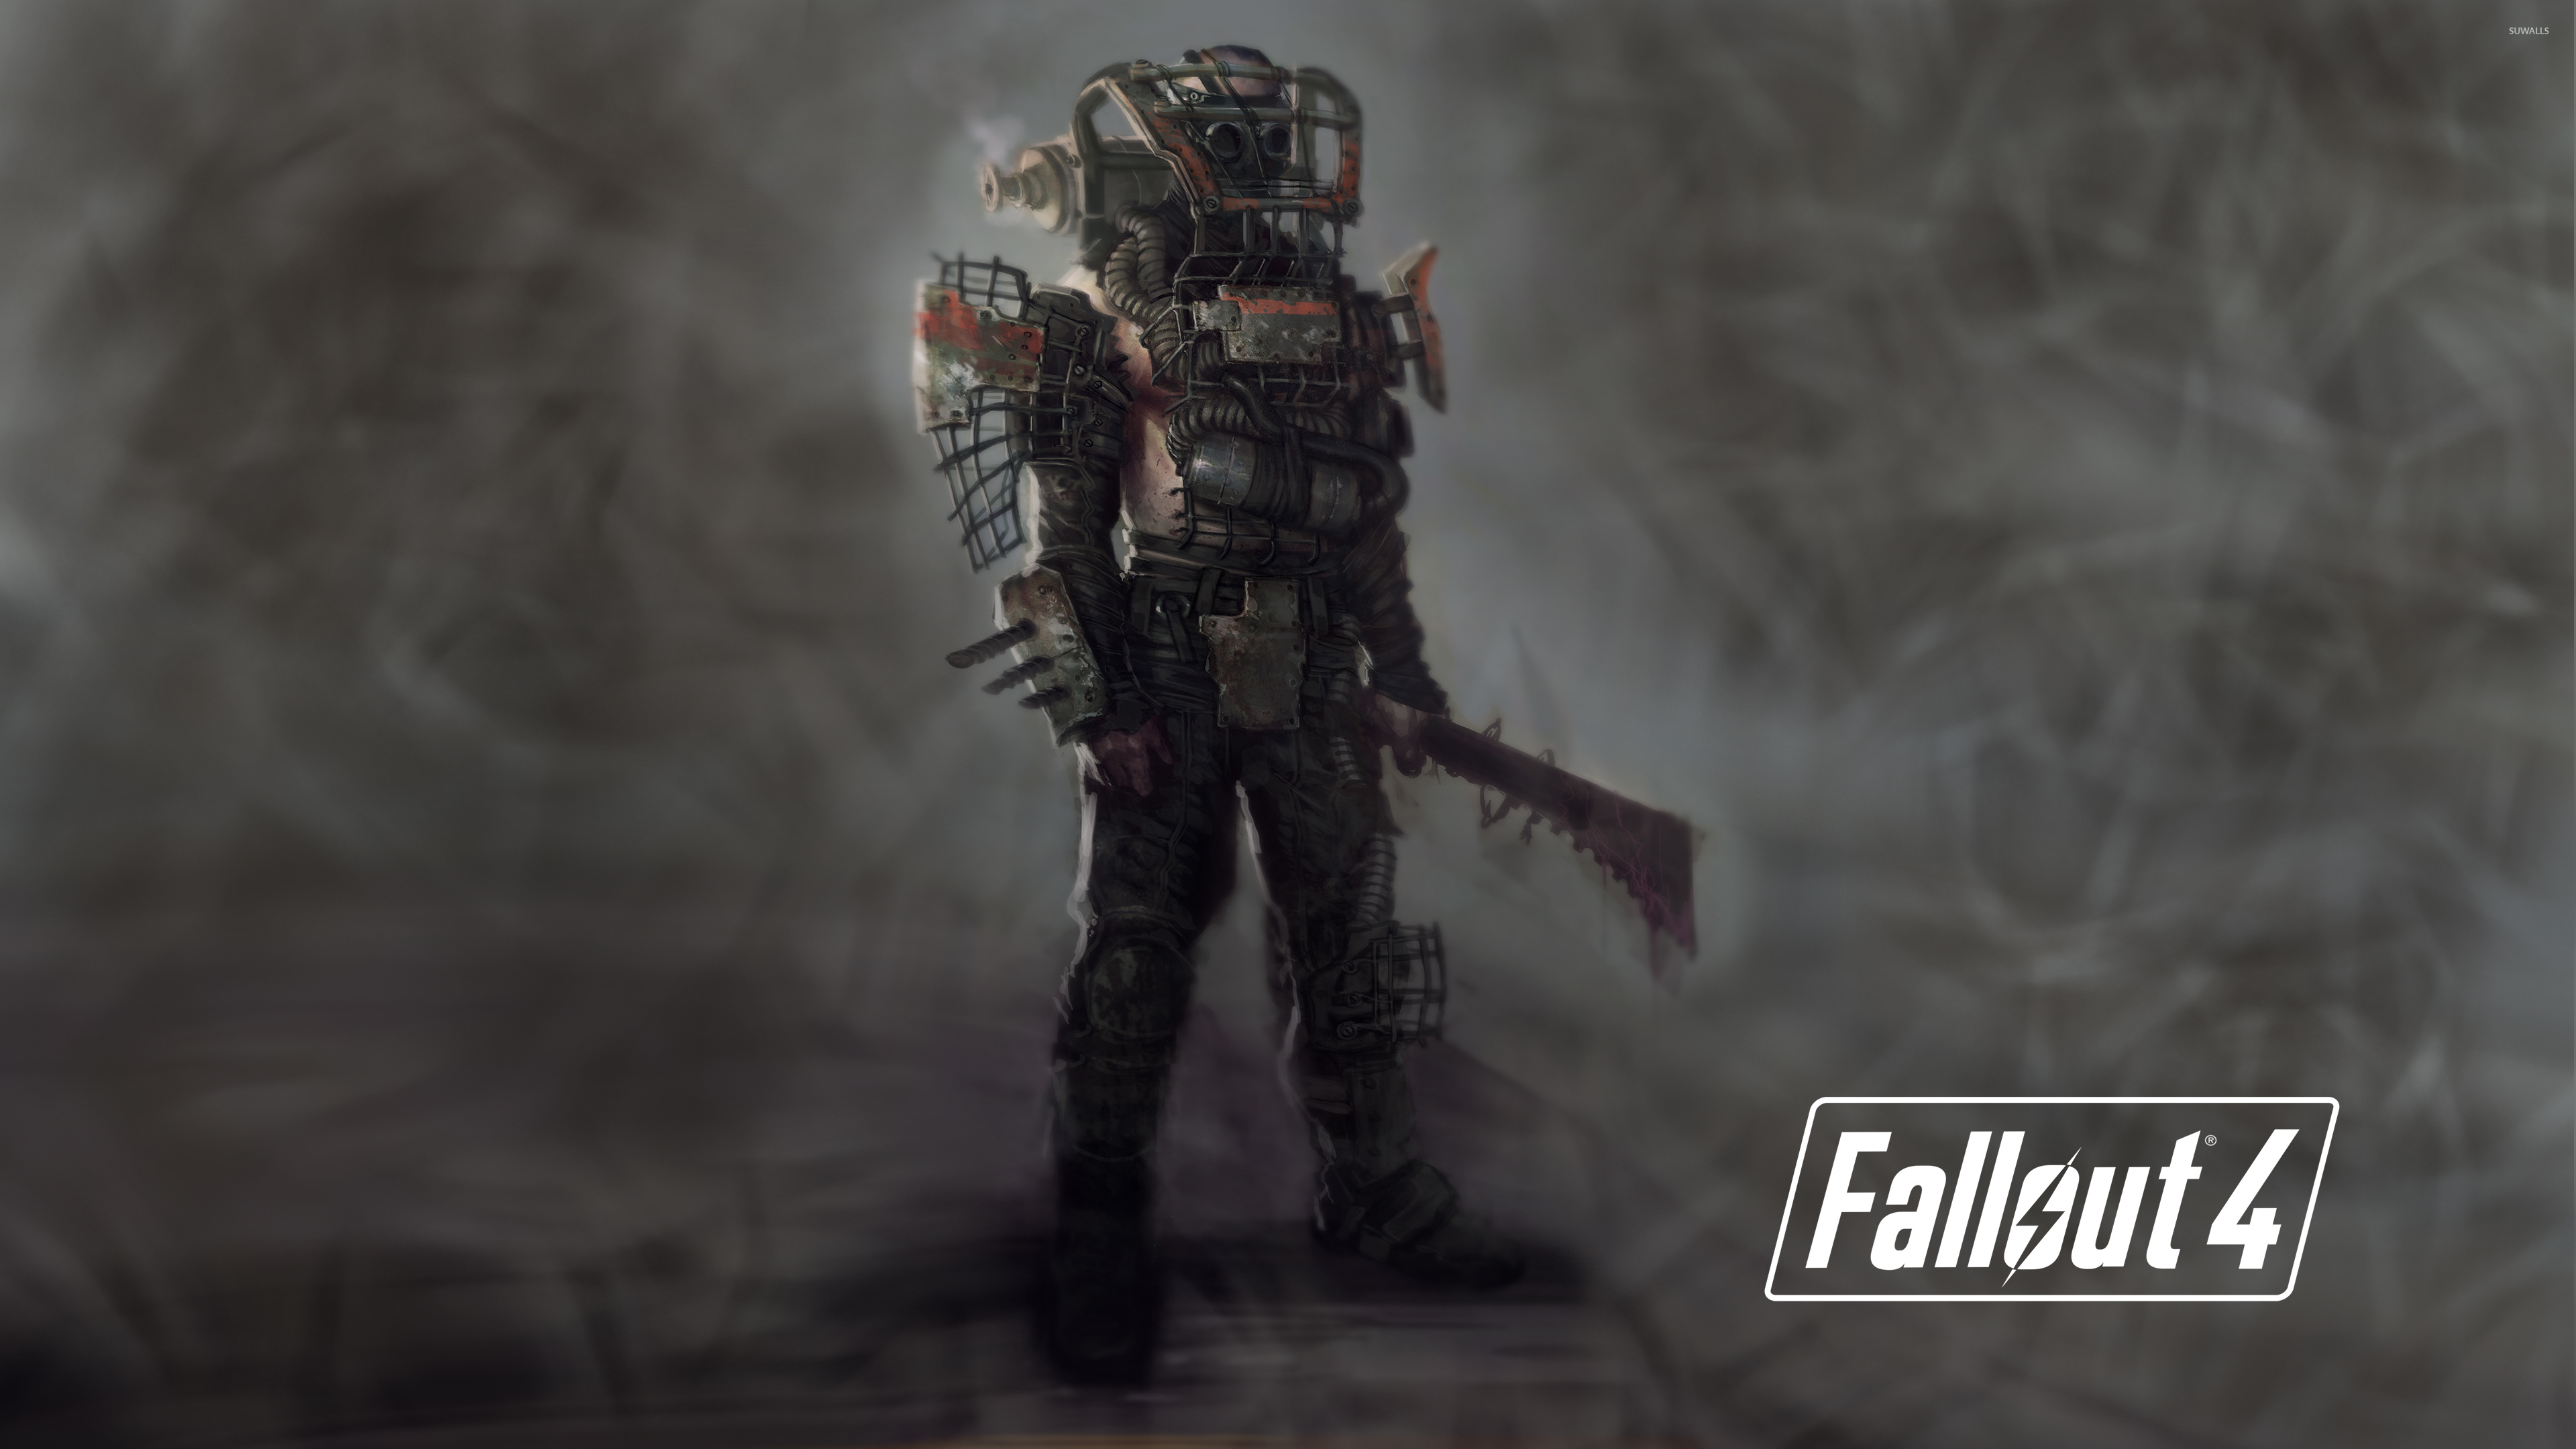 Raider in fallout 4 wallpaper game wallpapers 50130 for Fallout 4 bedroom ideas